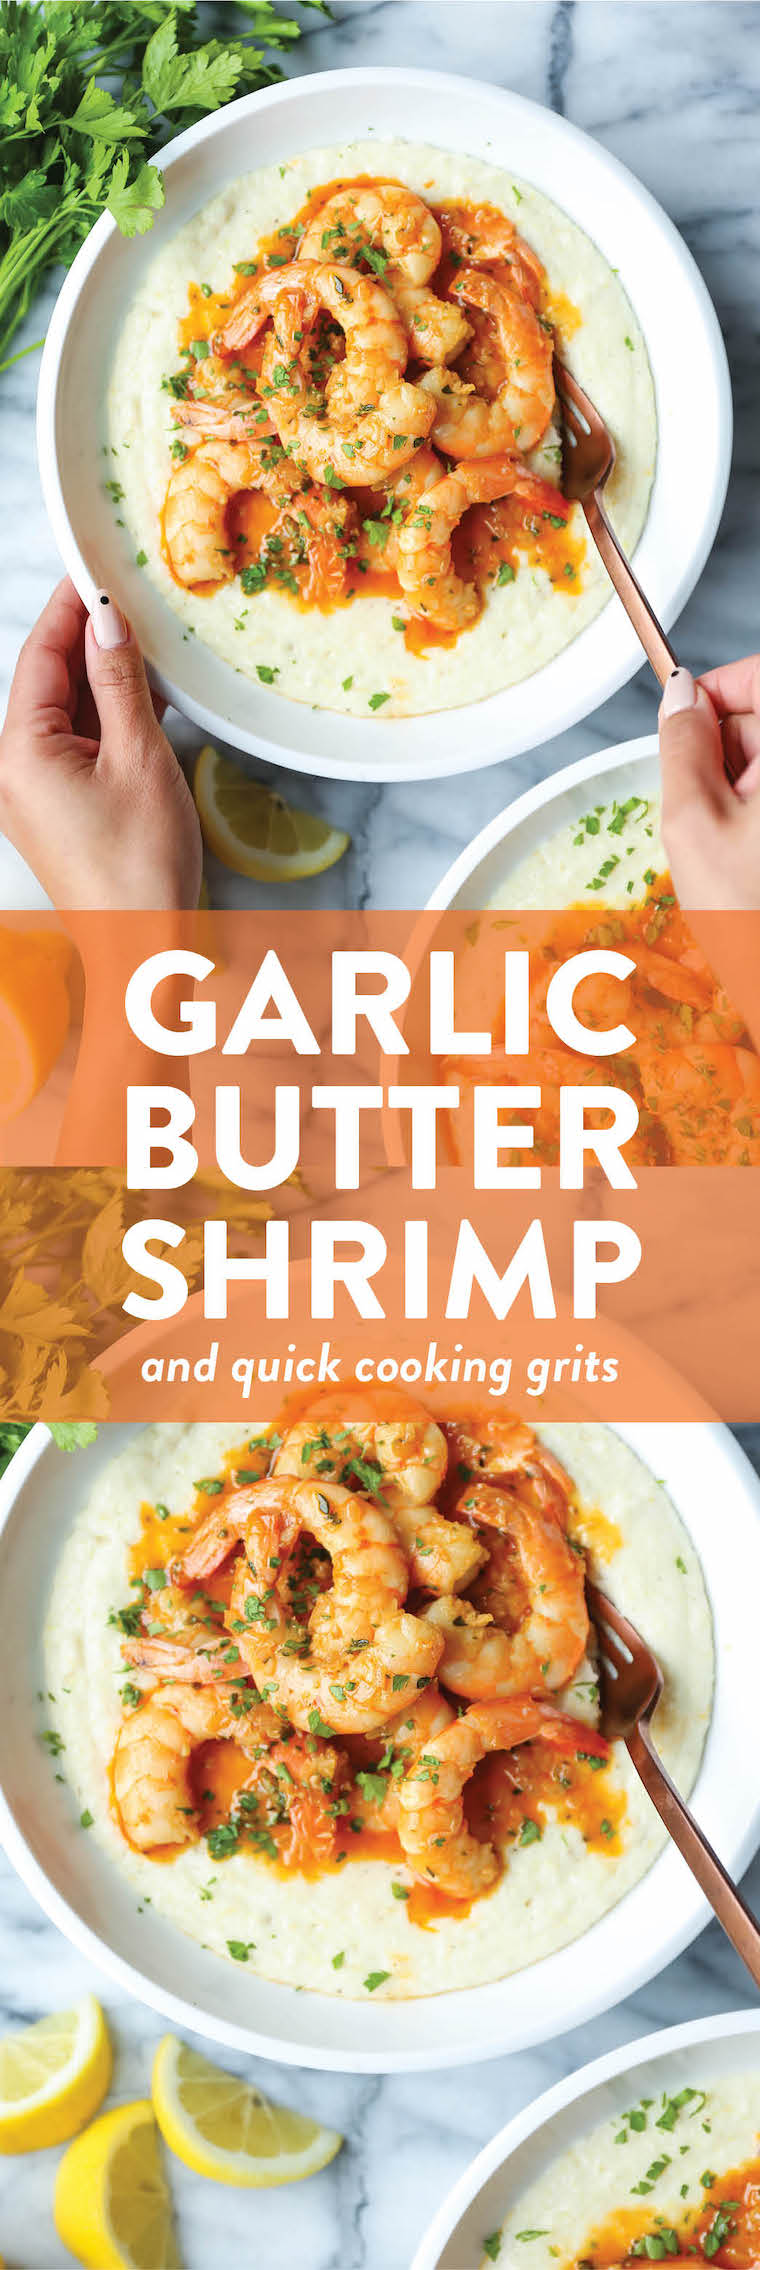 Garlic Butter Shrimp and Grits - Speedy comfort food at its best! Perfectly garlicky, buttery shrimp cooked so so quickly, served with the creamiest grits!